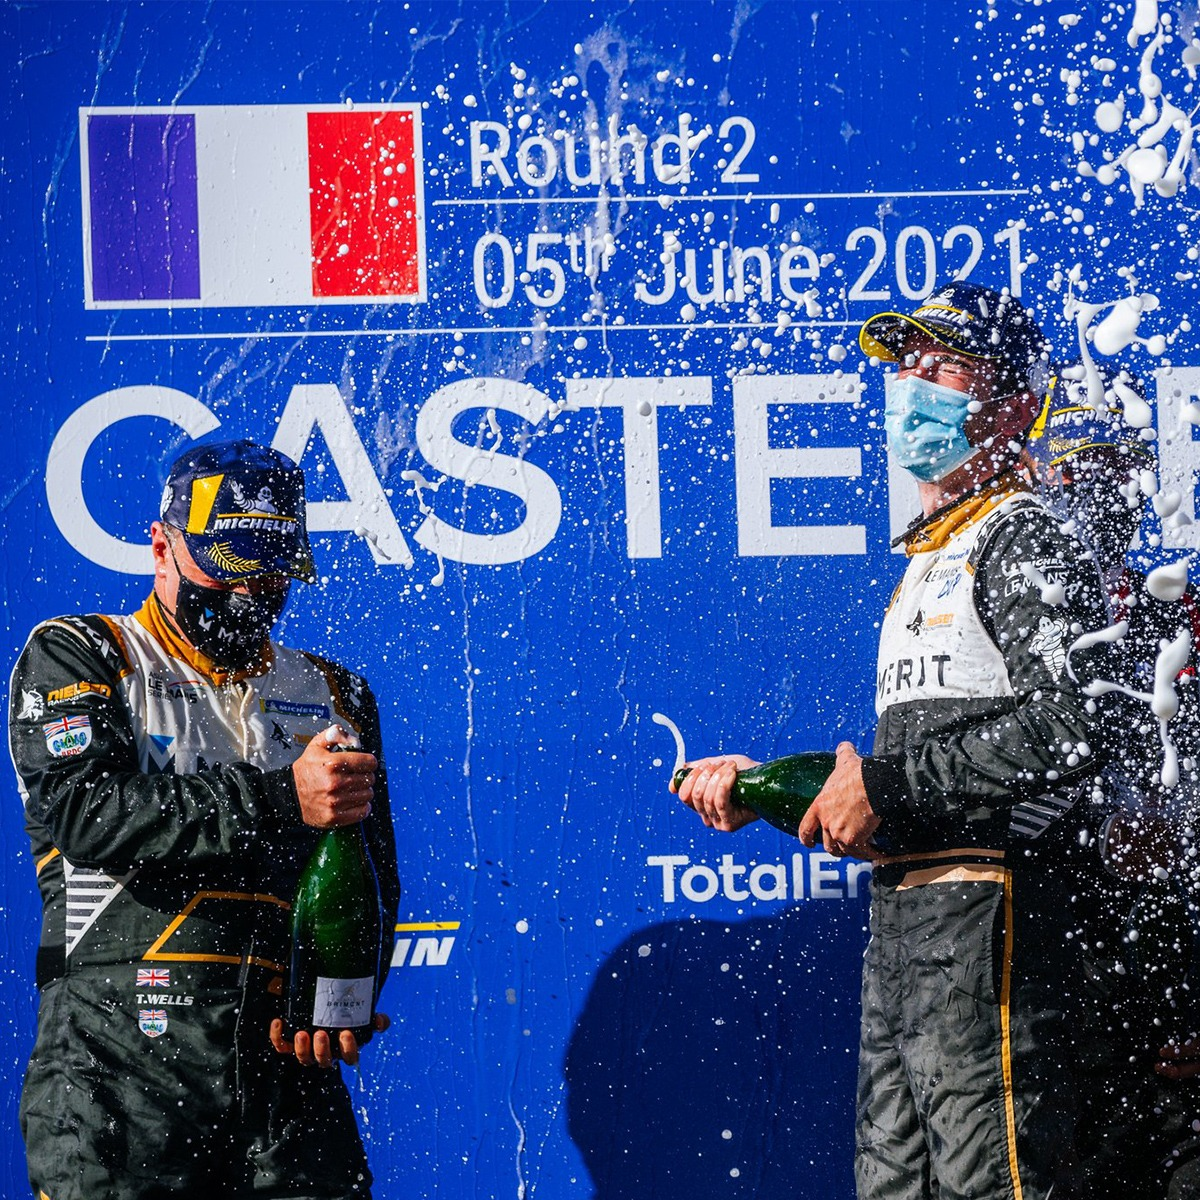 Nielsen Racing 16 - First Michelin LMC victory of the season